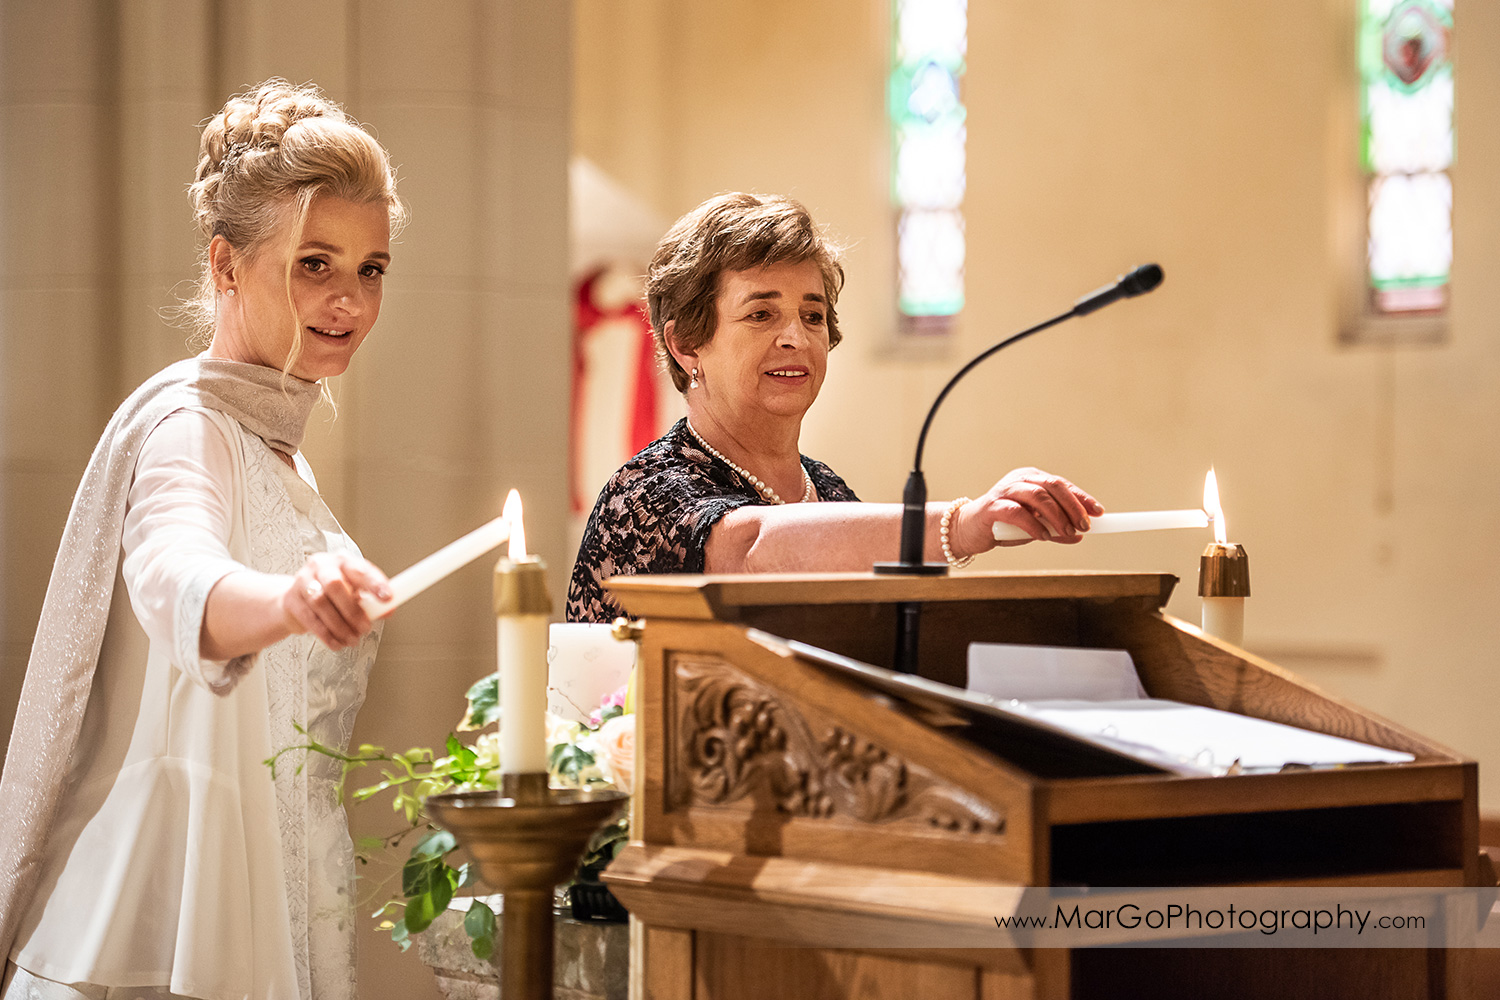 bride and groom's mothers lighting candles during wedding ceremony at Oakland Church of Saint Leo the Great